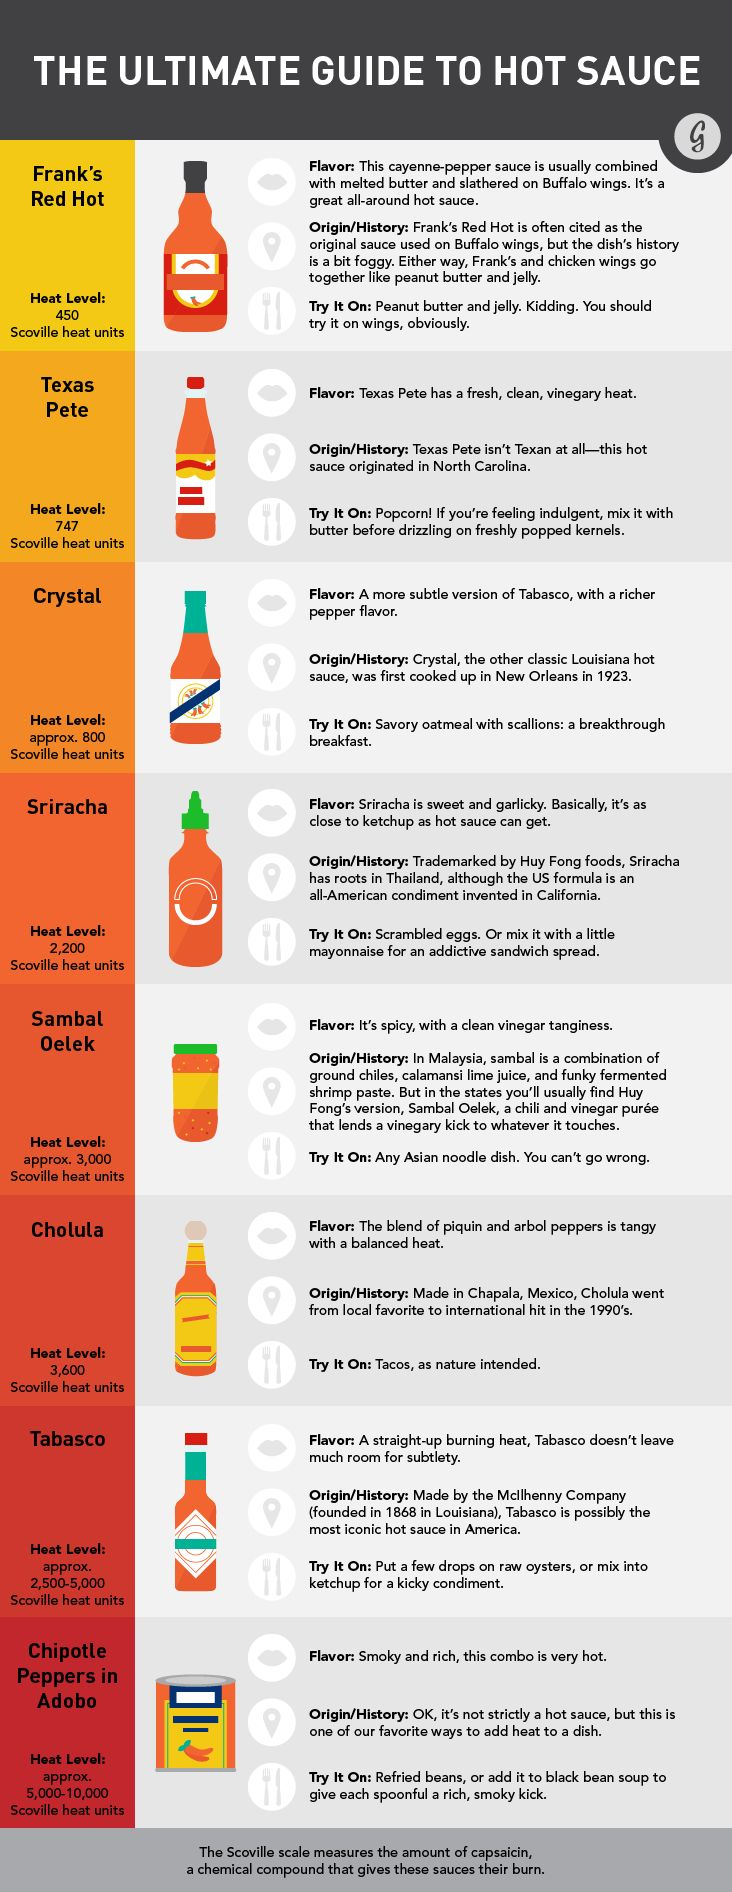 The Ultimate Guide to Hot Sauce #spicy #hotsauce